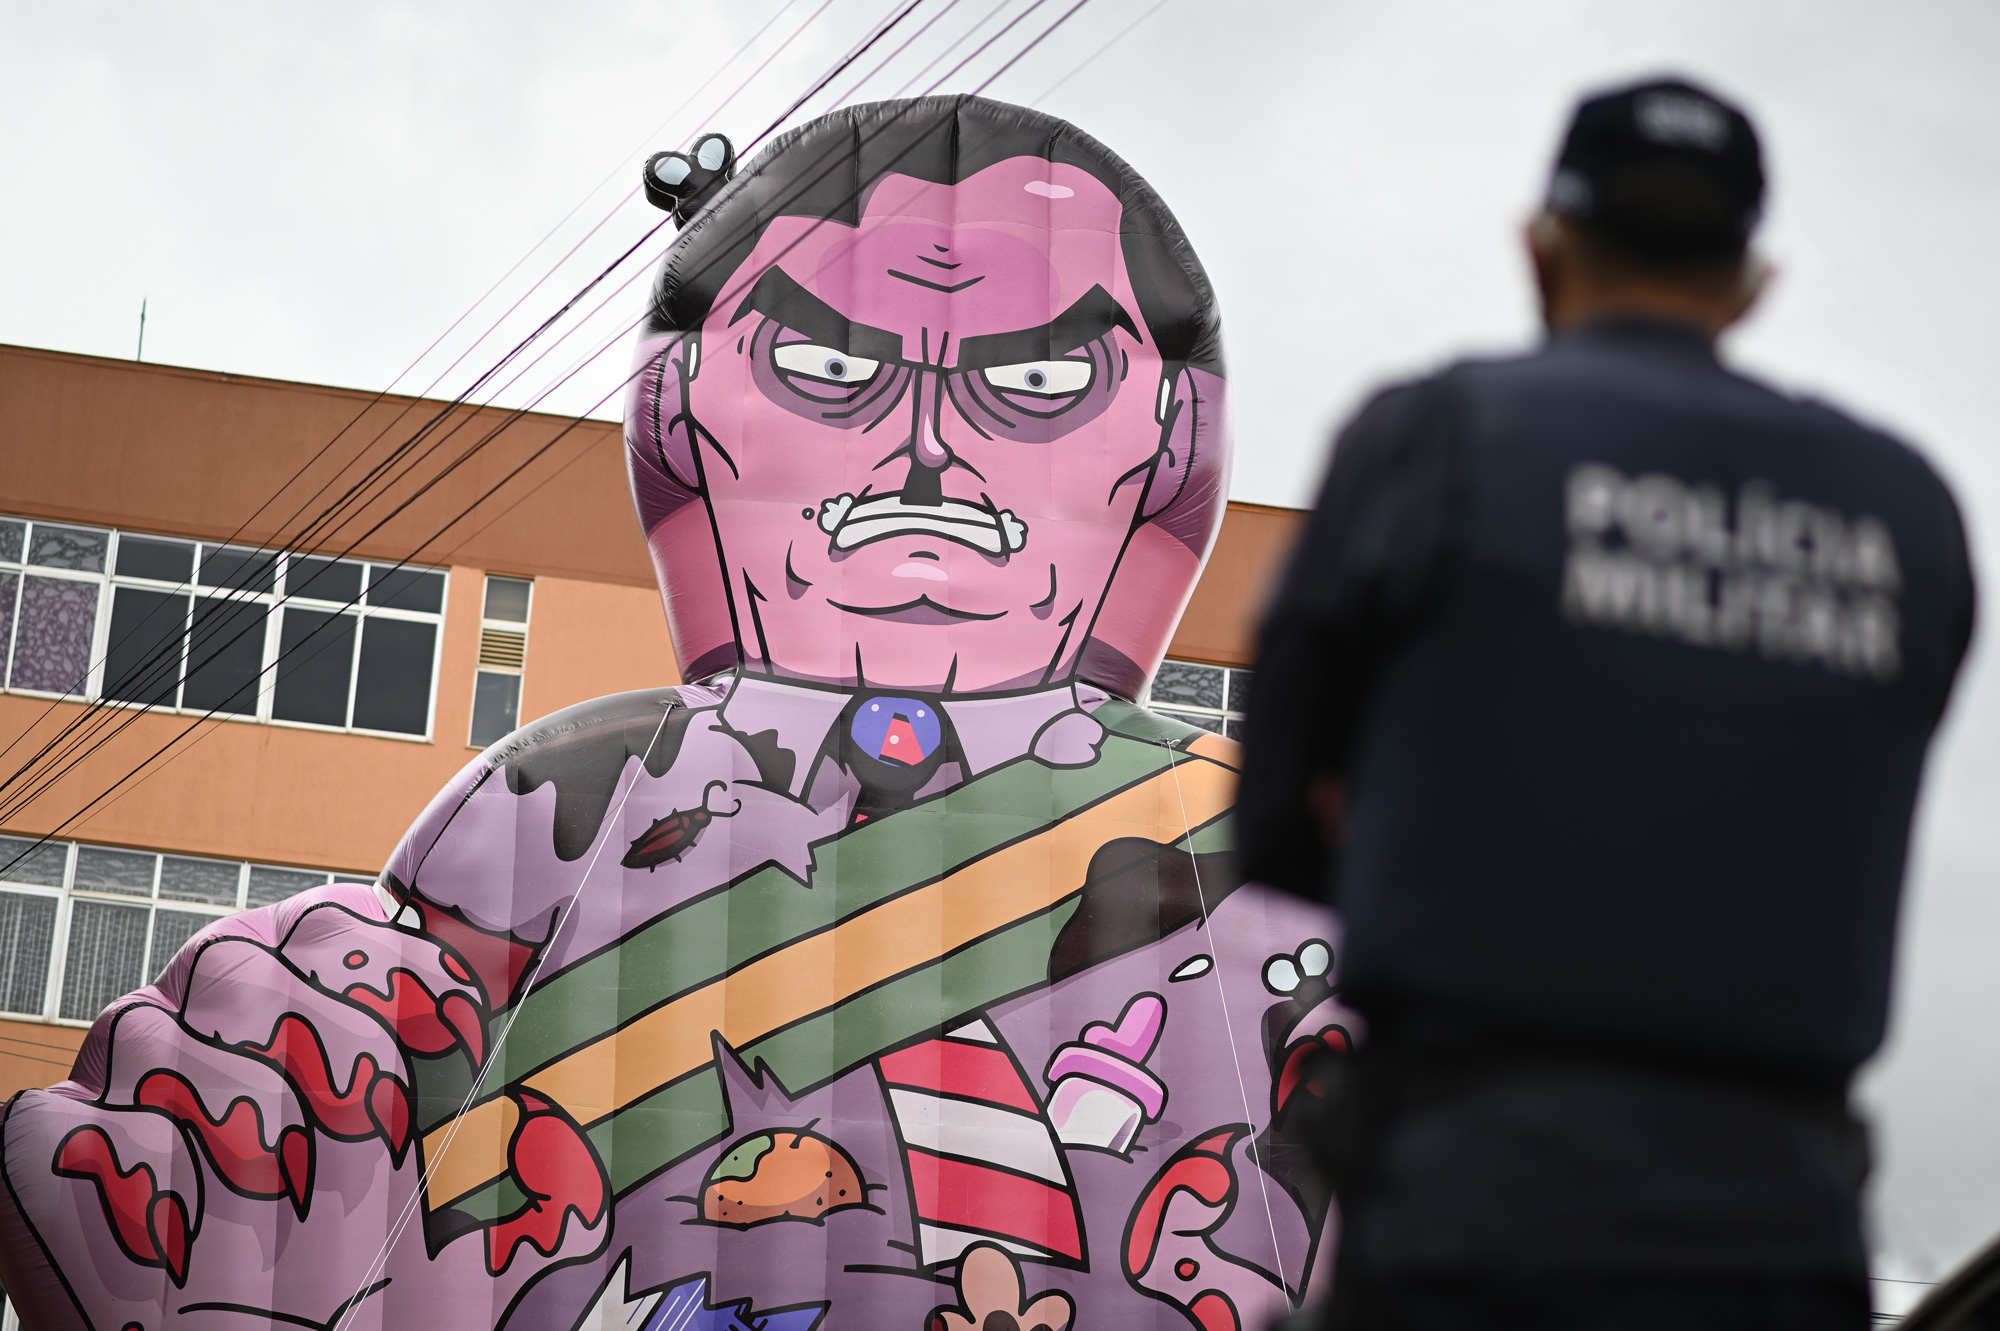 BRASILIA, BRAZIL -JANUARY17: A police officer watches a large puppet representing Brazil's President Jair Bolsonaro as a killer raised by demonstrators during a protest in favor of Bolsonaro's impeachment in front of the headquarters of Brazil's health agency ANVISA (National Health Surveillance Agency) amidst the Coronavirus (COVID - 19) pandemic on January 17, 2021 in Brasilia.Brazil has over 8.455,000 confirmed positive cases of Coronavirus and has over 209,296 deaths. (Photo by Andre Borges/Getty Images)